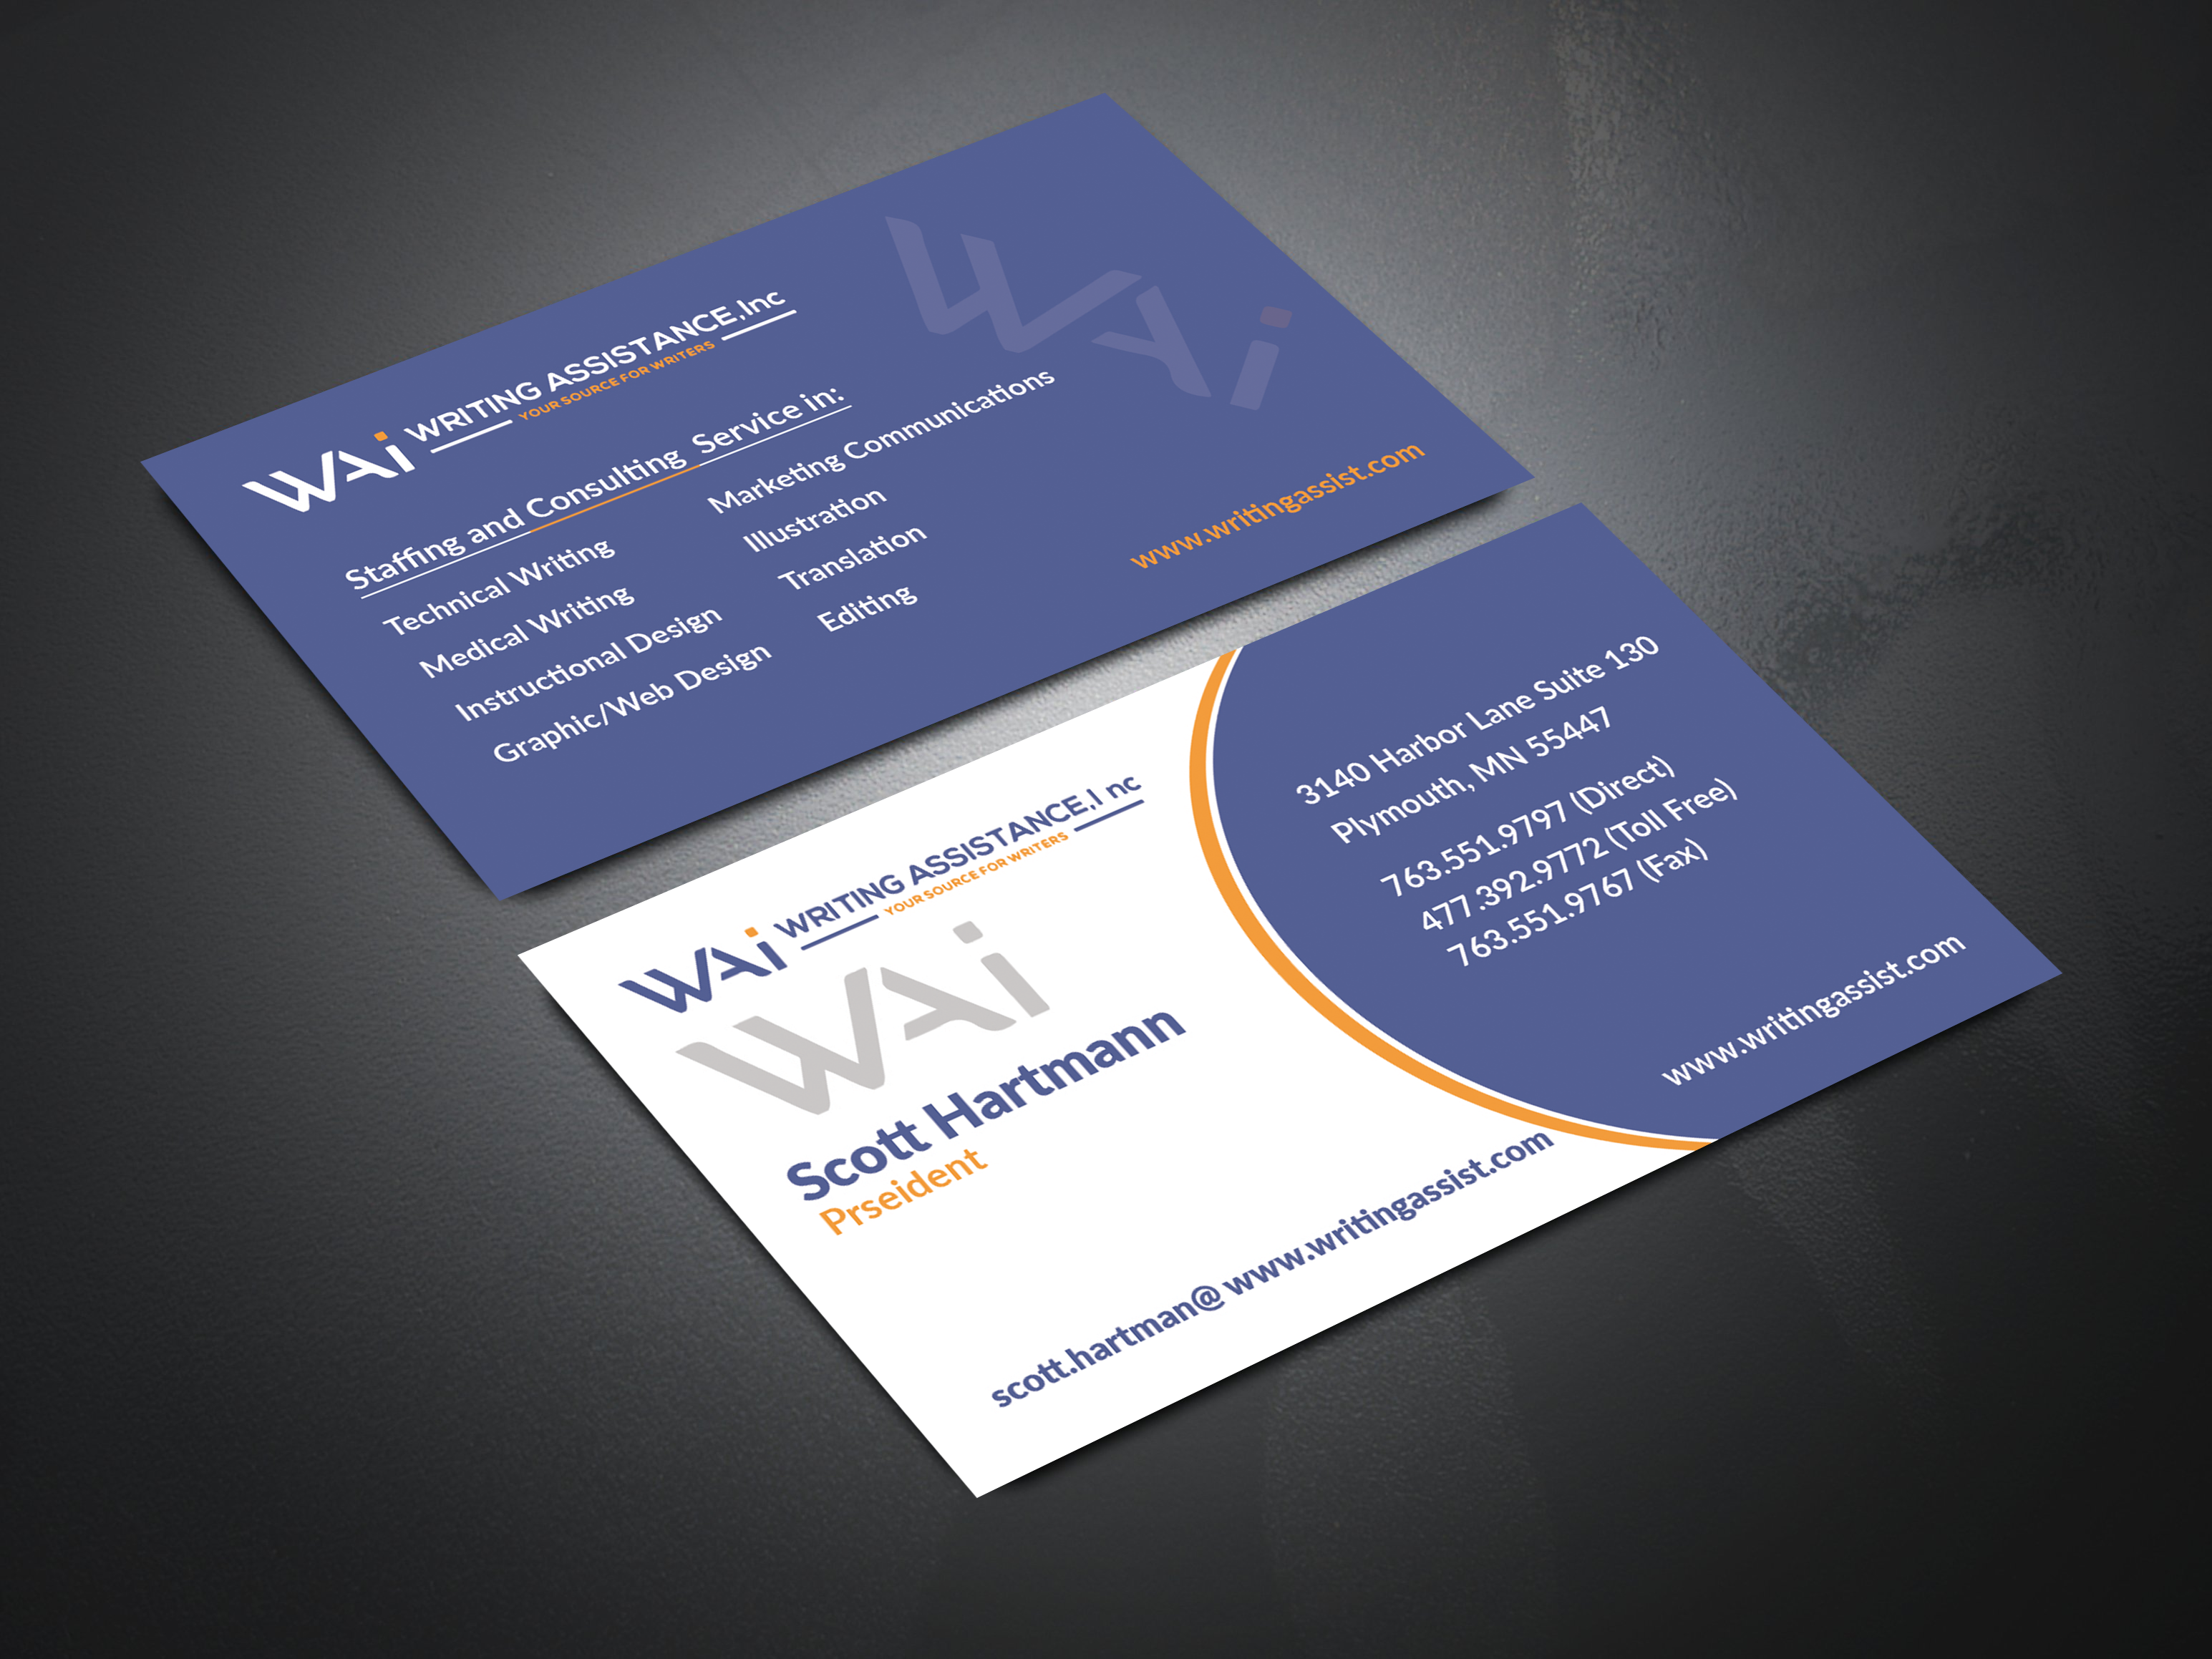 Check Out My Behance Project Business Card Project Ii Https Www Behance Net Gallery 80685215 Business Professional Business Cards Business Cards Business